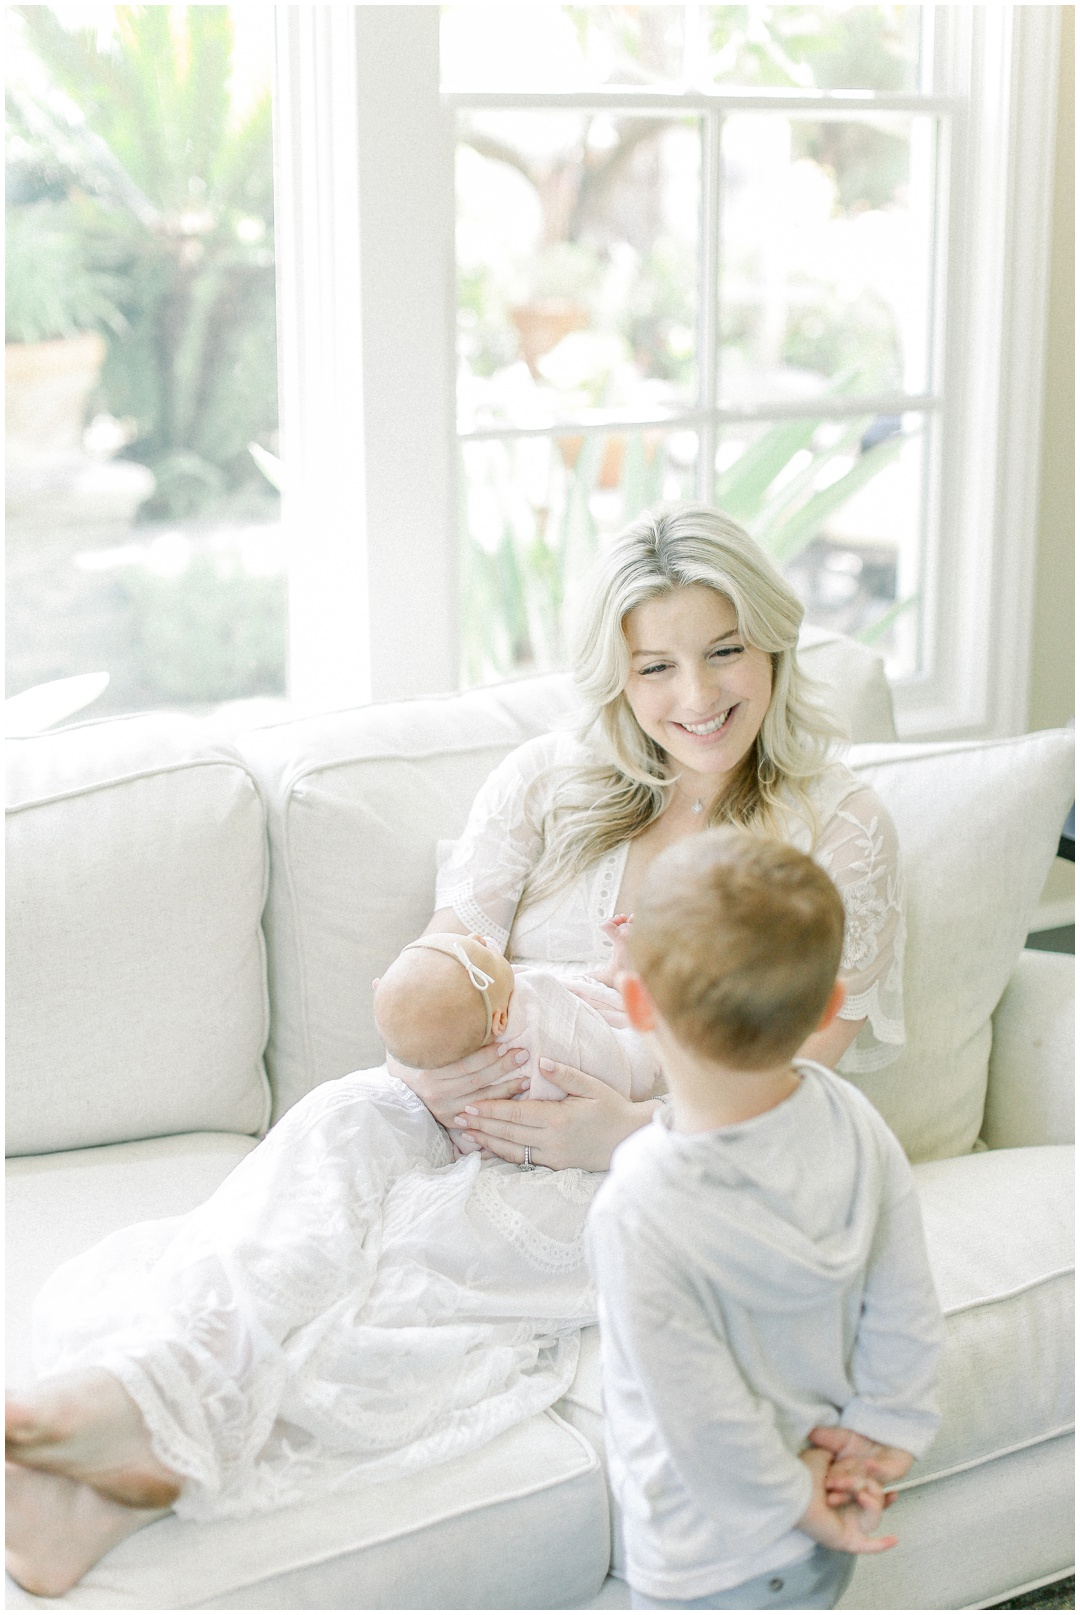 Newport_Beach_Newborn_Light_Airy_Natural_Photographer_Newport_Beach_Photographer_Orange_County_Family_Photographer_Cori_Kleckner_Photography_Newport_Beach_Photographer_newborn_kole_calhoun56_kole_calhoun_Jennifer_Calhoun_Knox_Calhoun_3793.jpg